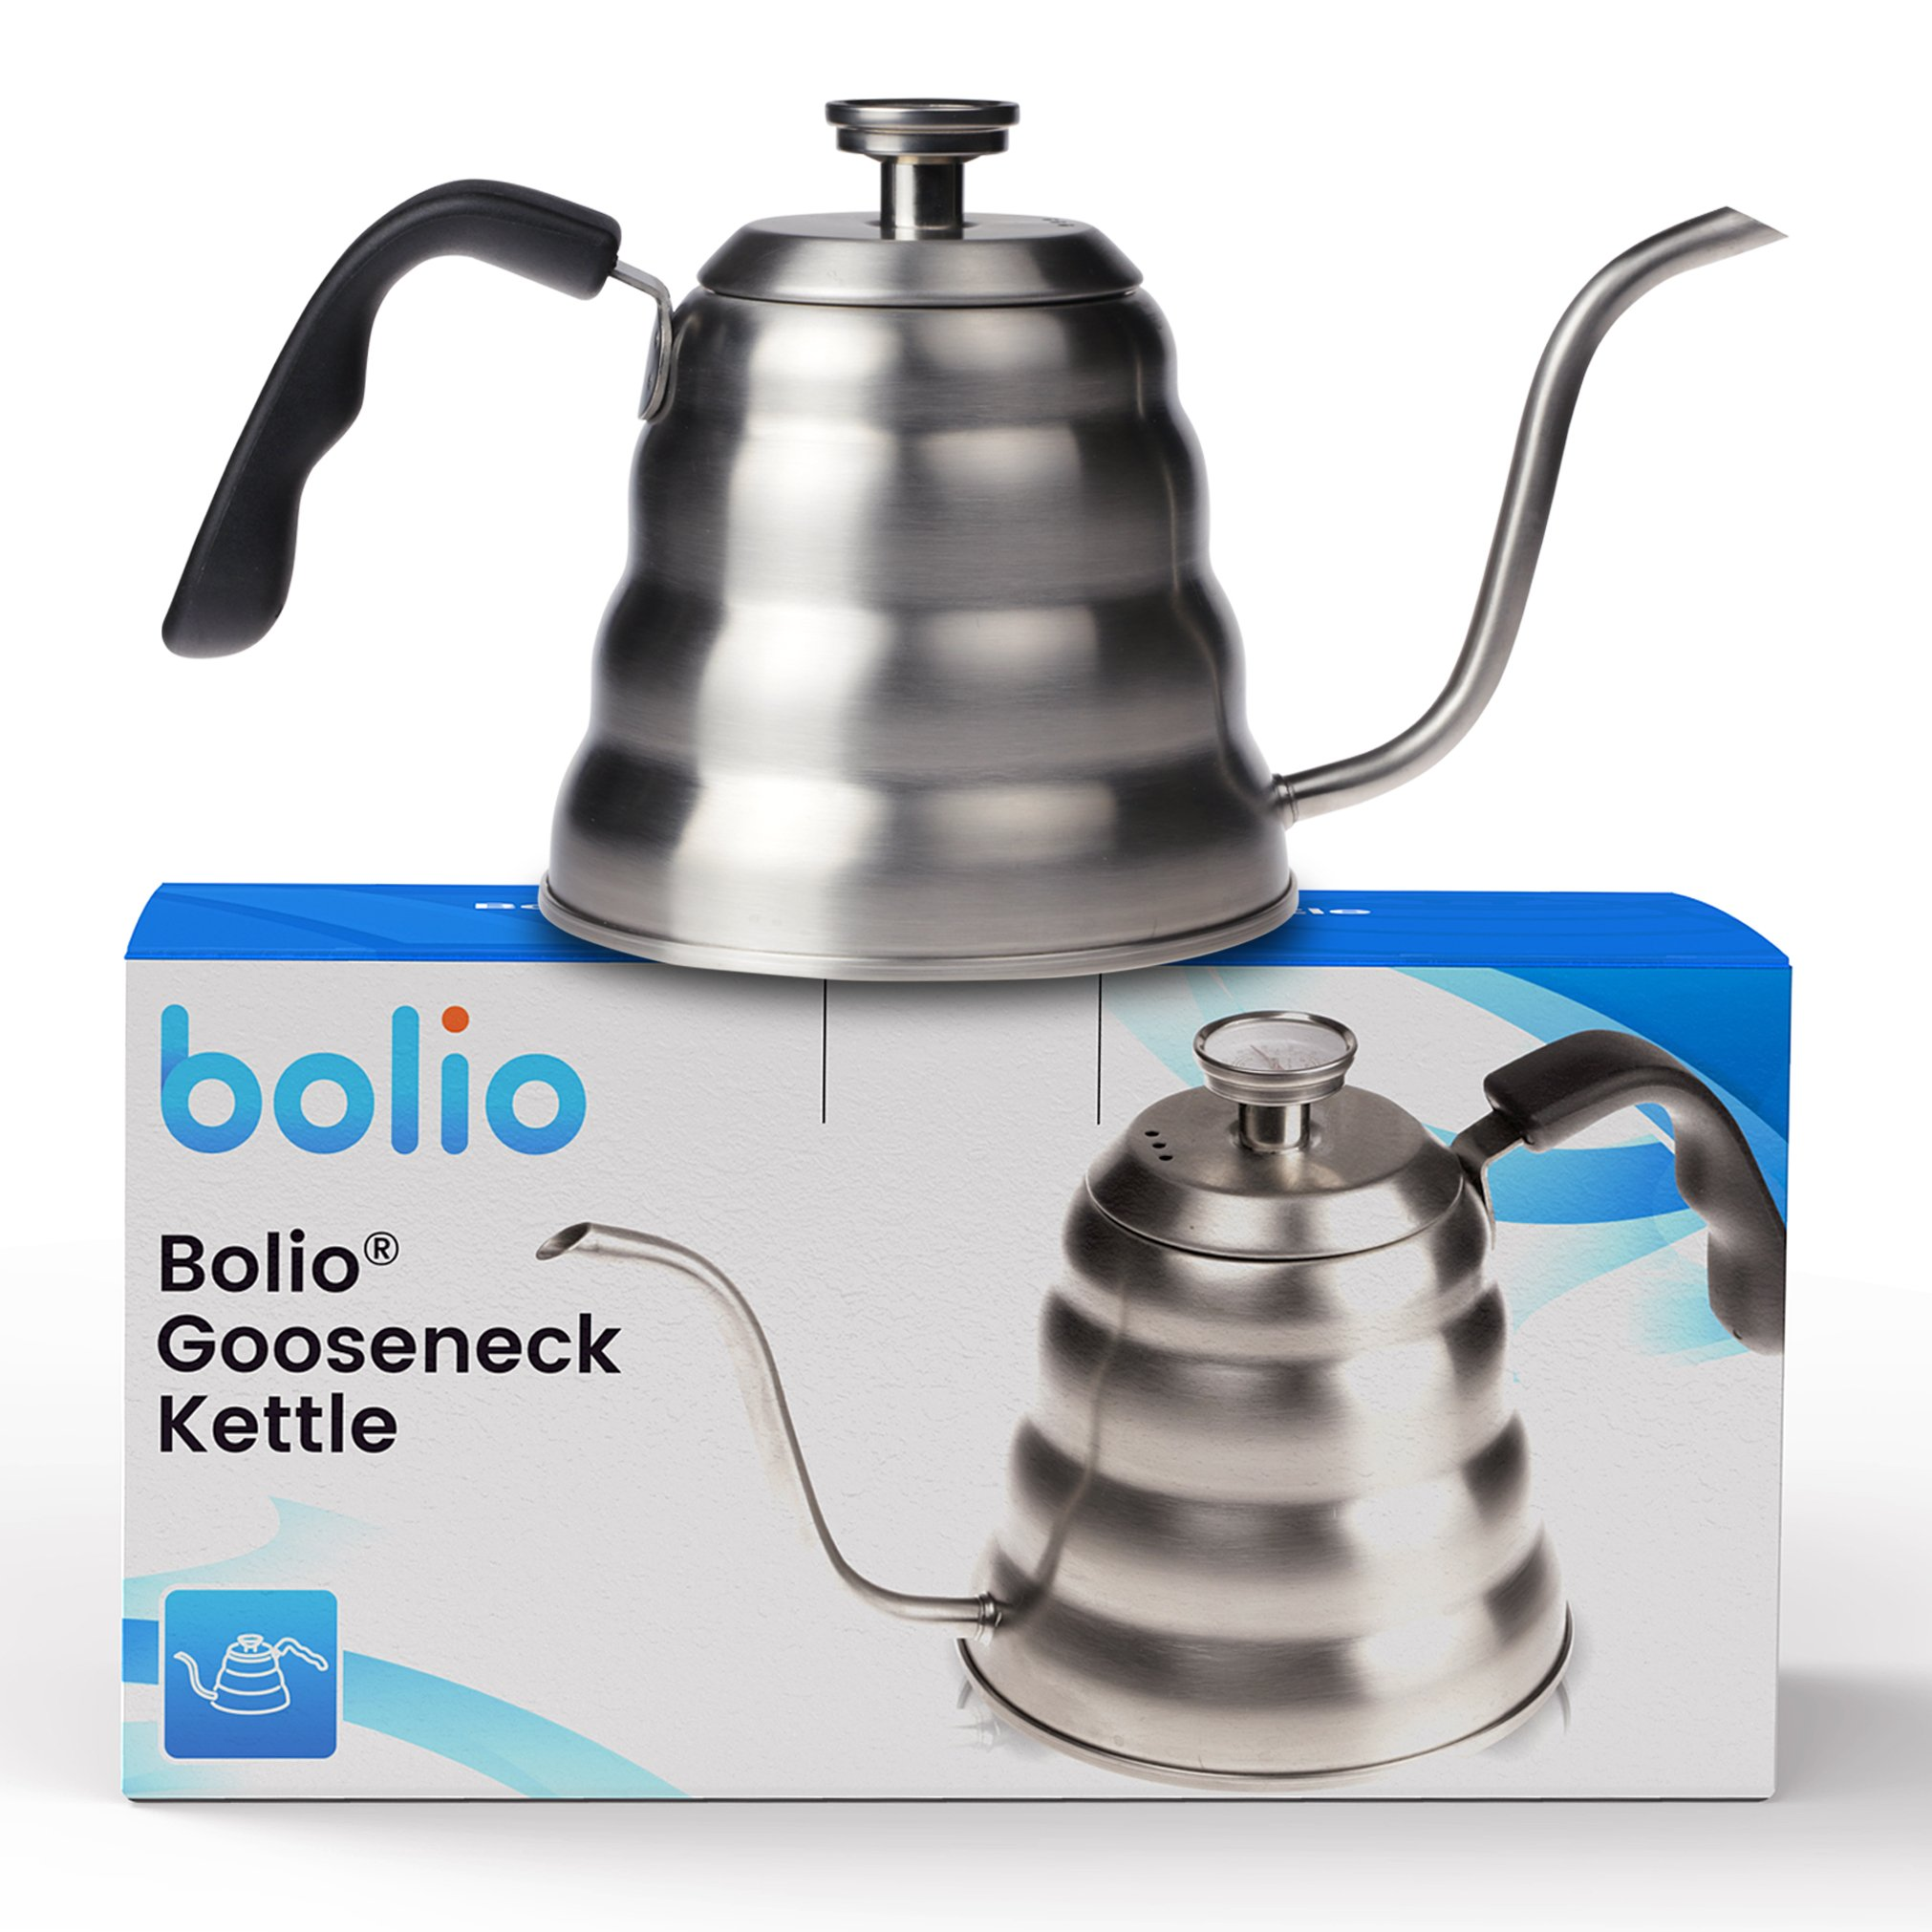 Bolio - Premium Pour Over Coffee Kettle - Discover how much better coffee tastes when you make it by hand using the right tools.